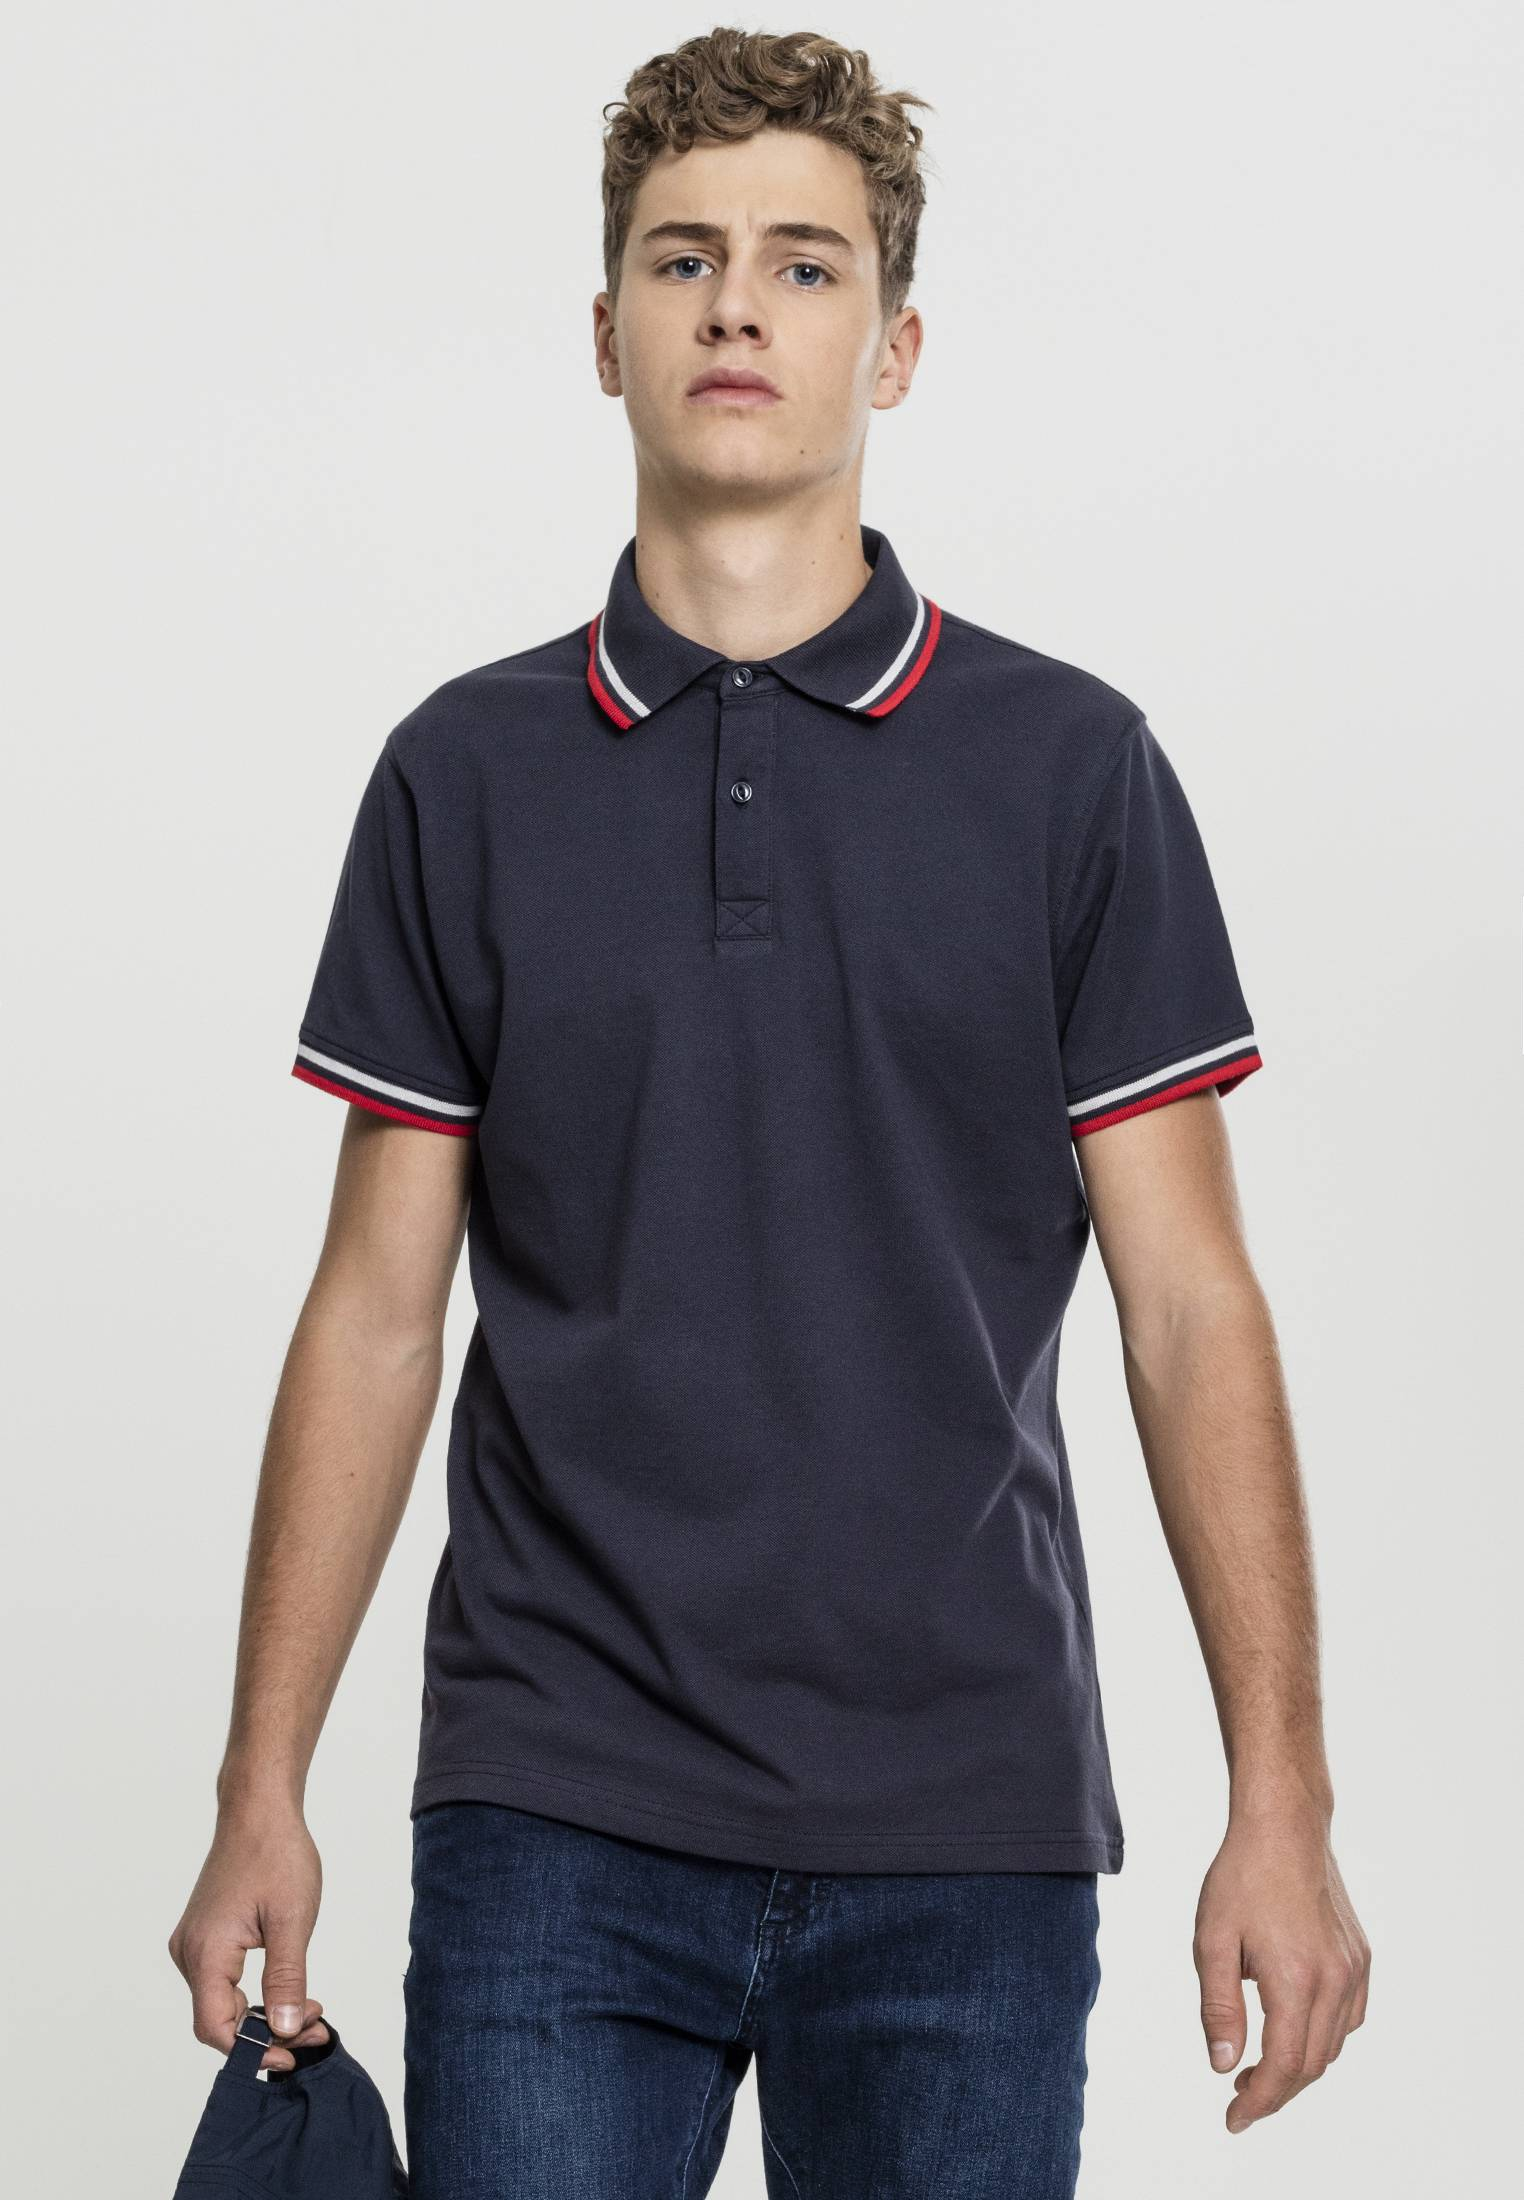 Urban Classic Double Stripe Poloshirt navy/white/fire red - S